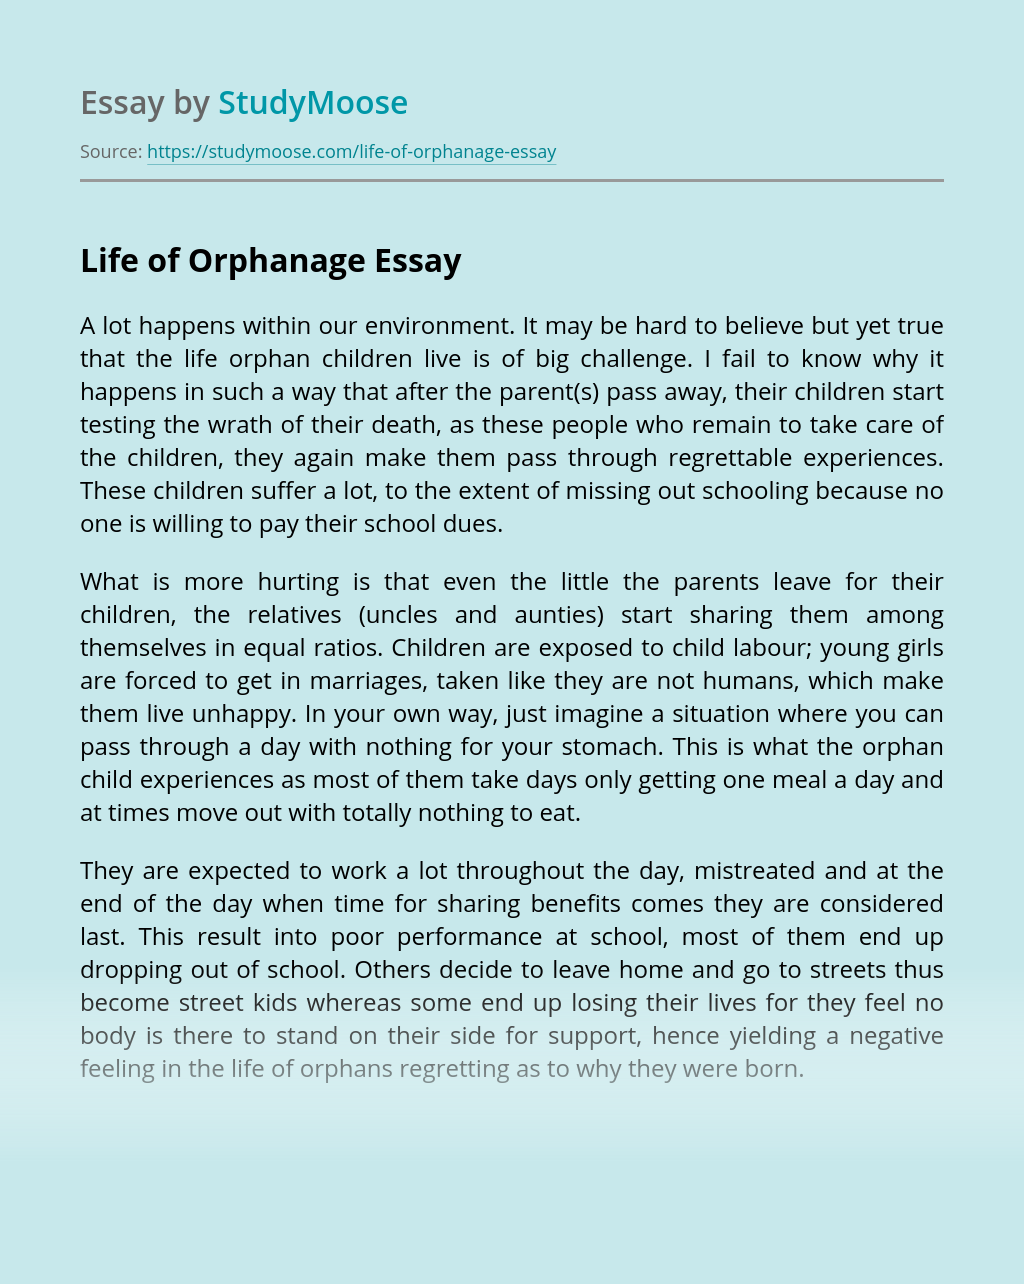 Life of Orphanage